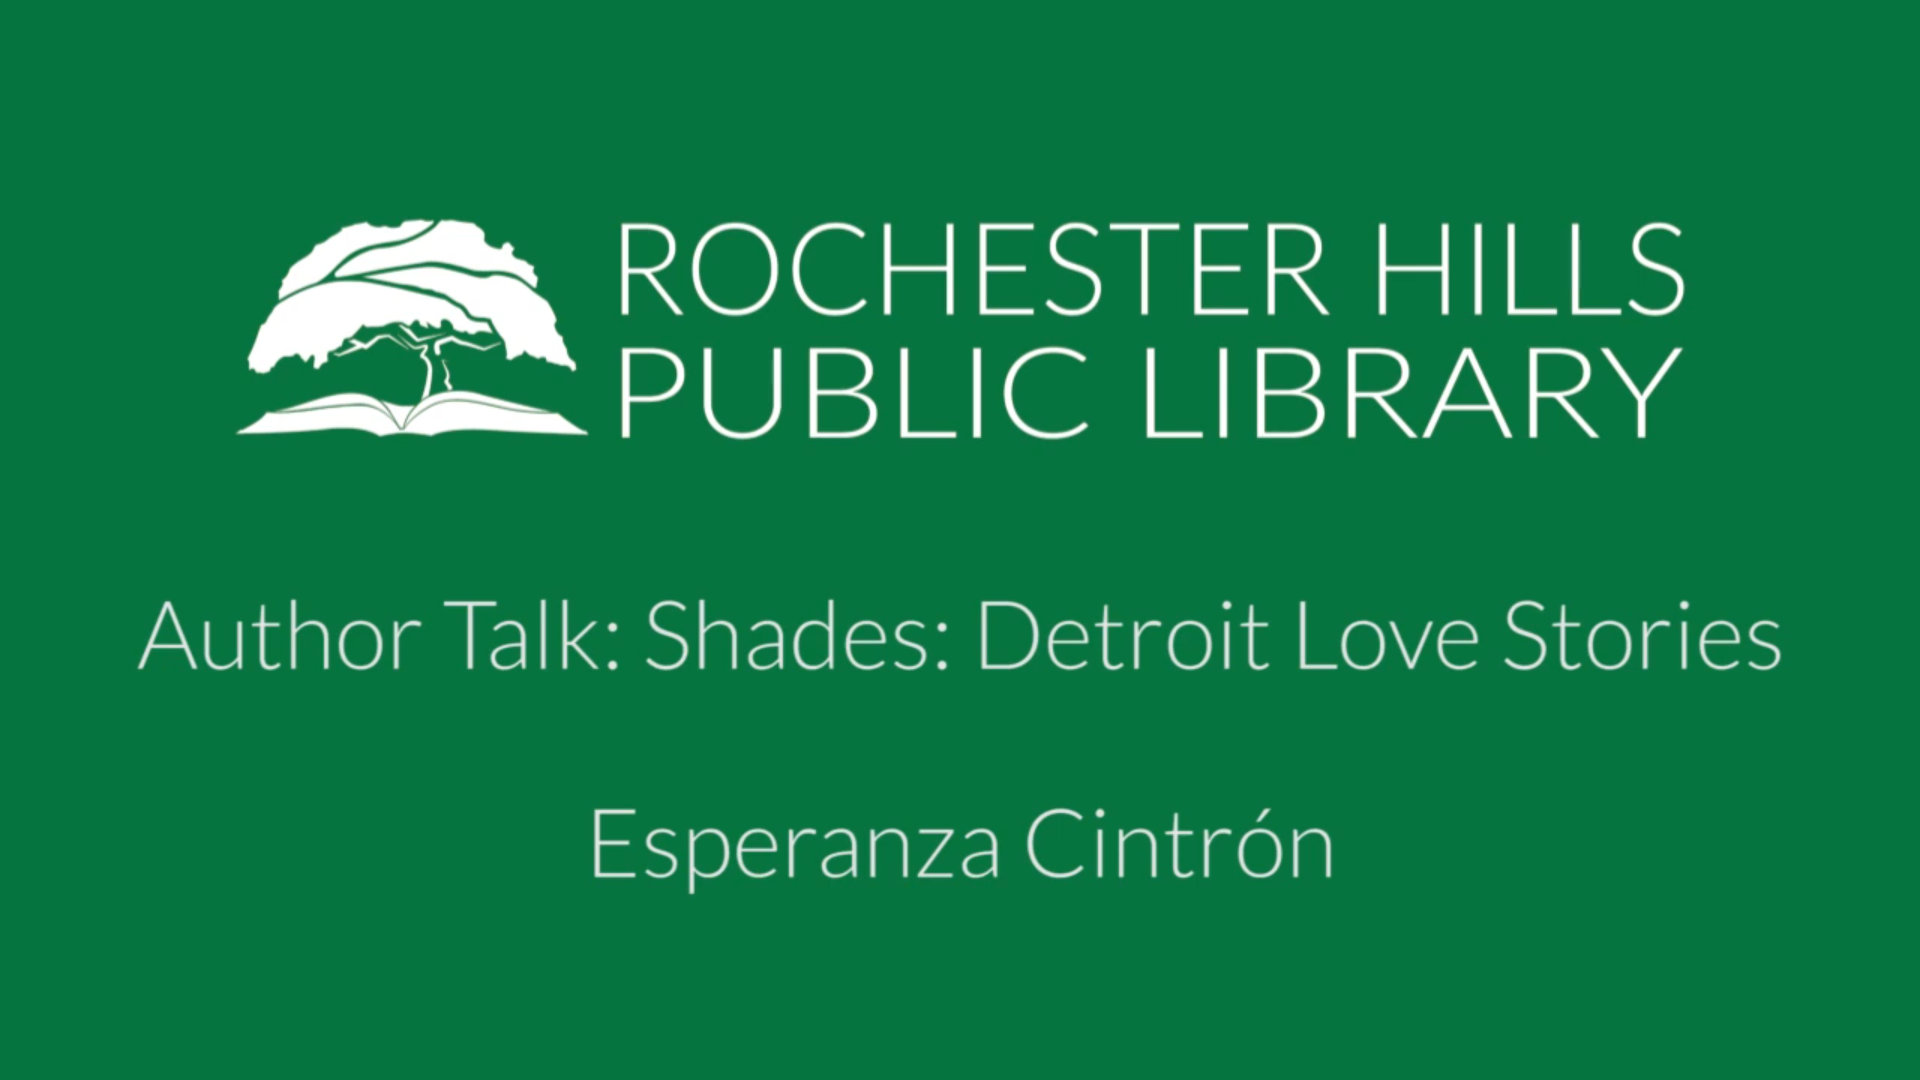 Author Talk: Shades: Detroit Love Stories with Esperanza Cintrón